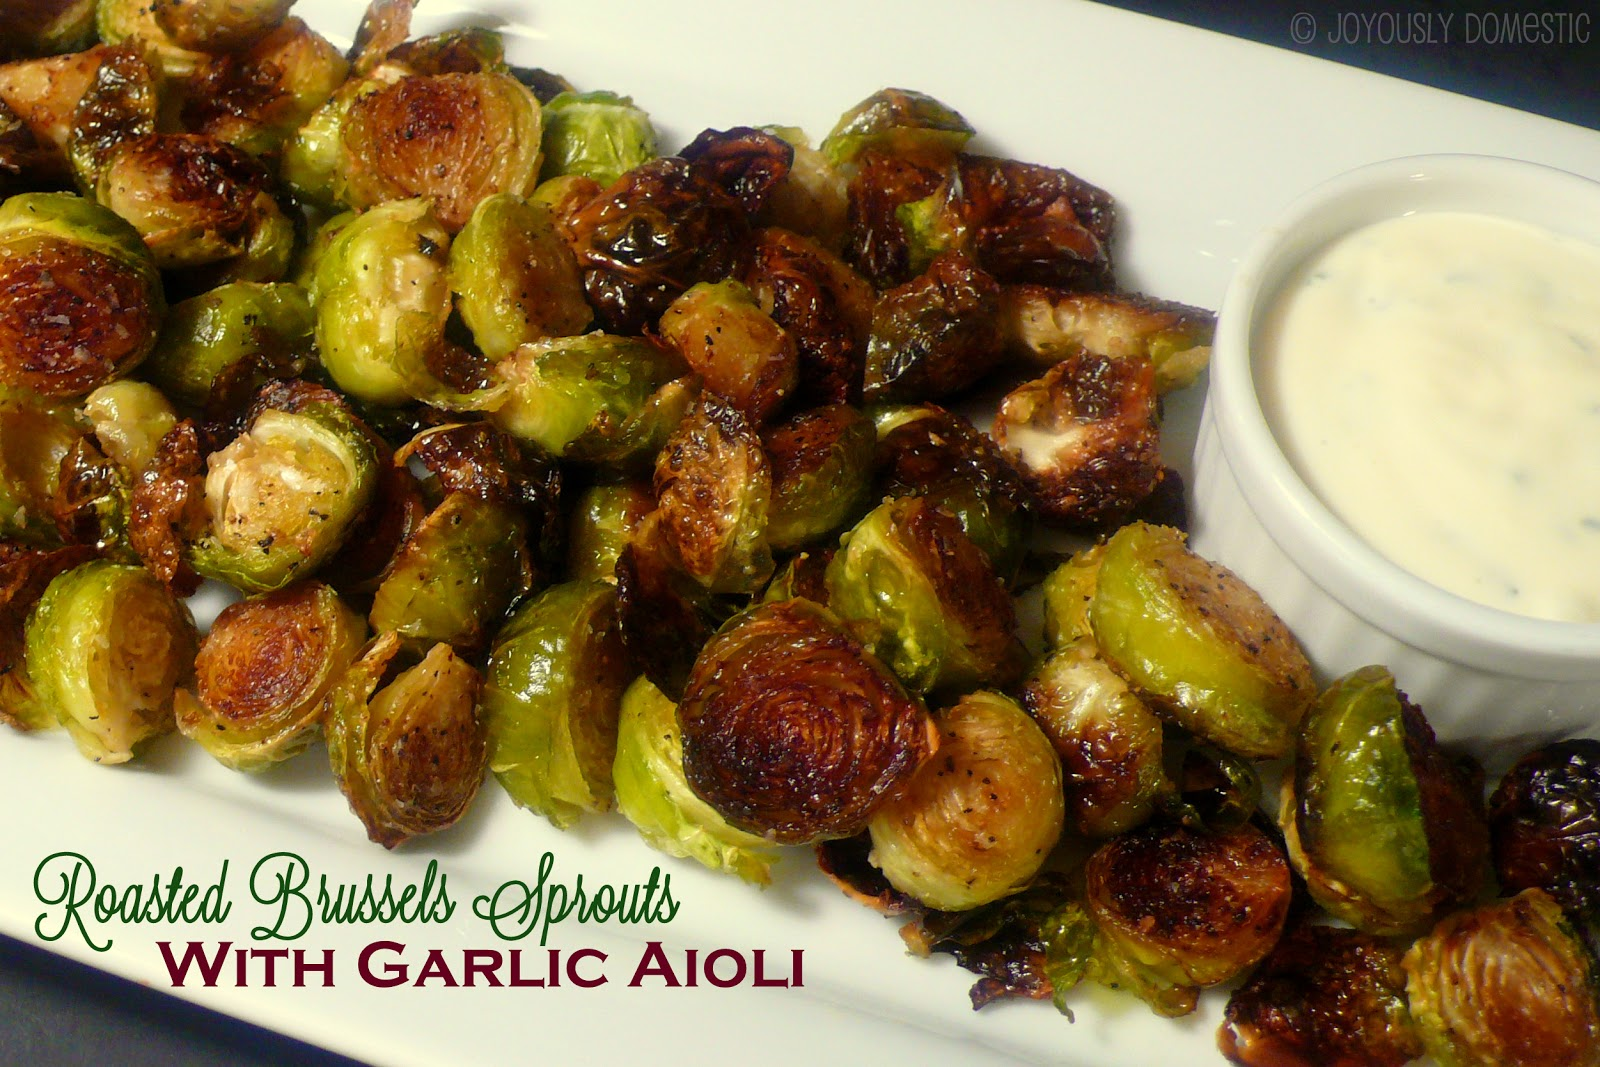 Joyously Domestic: Roasted Brussels Sprouts with Garlic Aioli